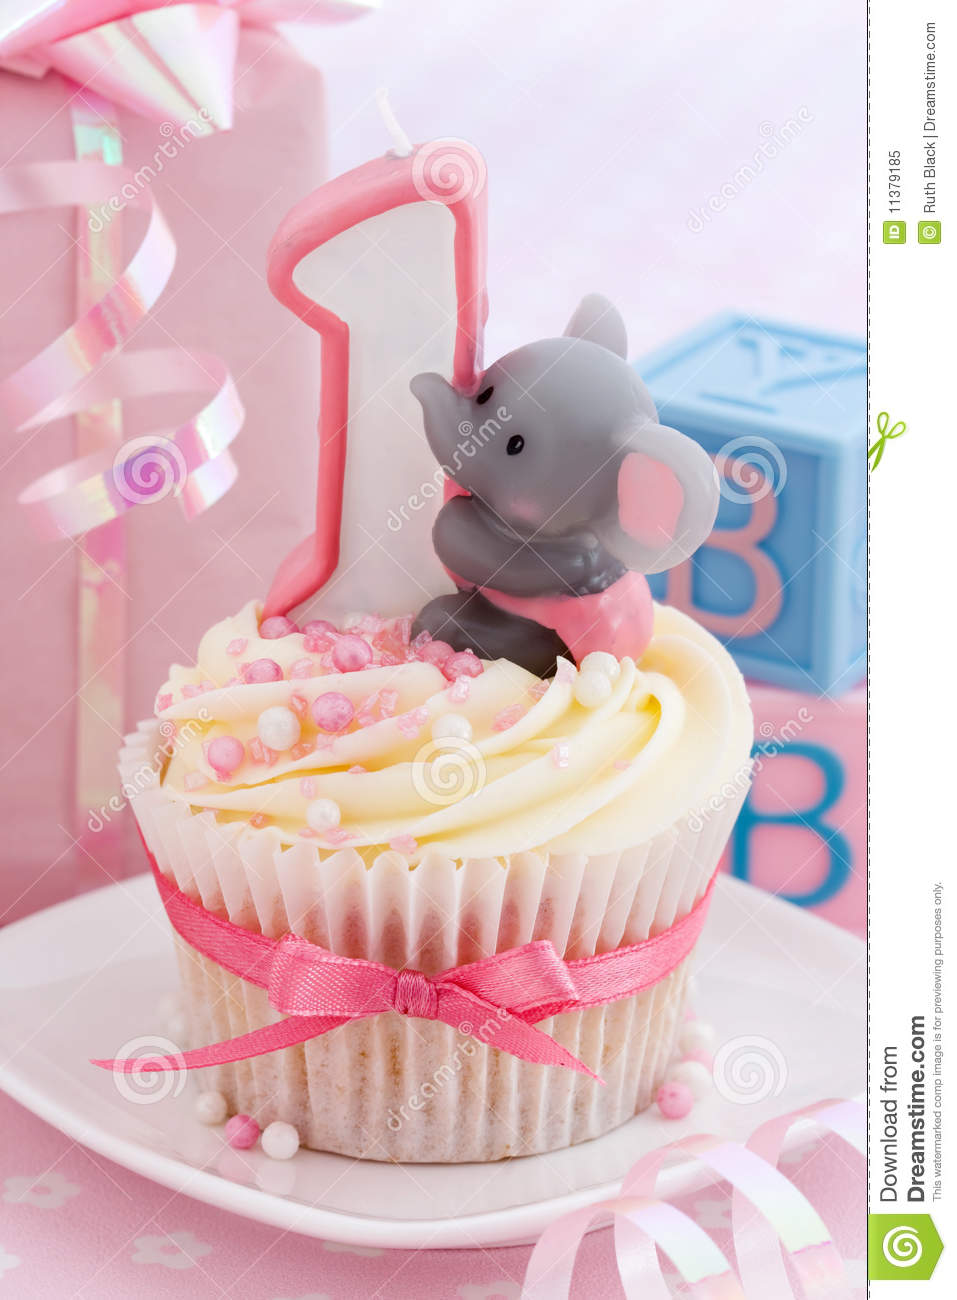 Babys First Birthday Stock Image Image Of Frosting 11379185